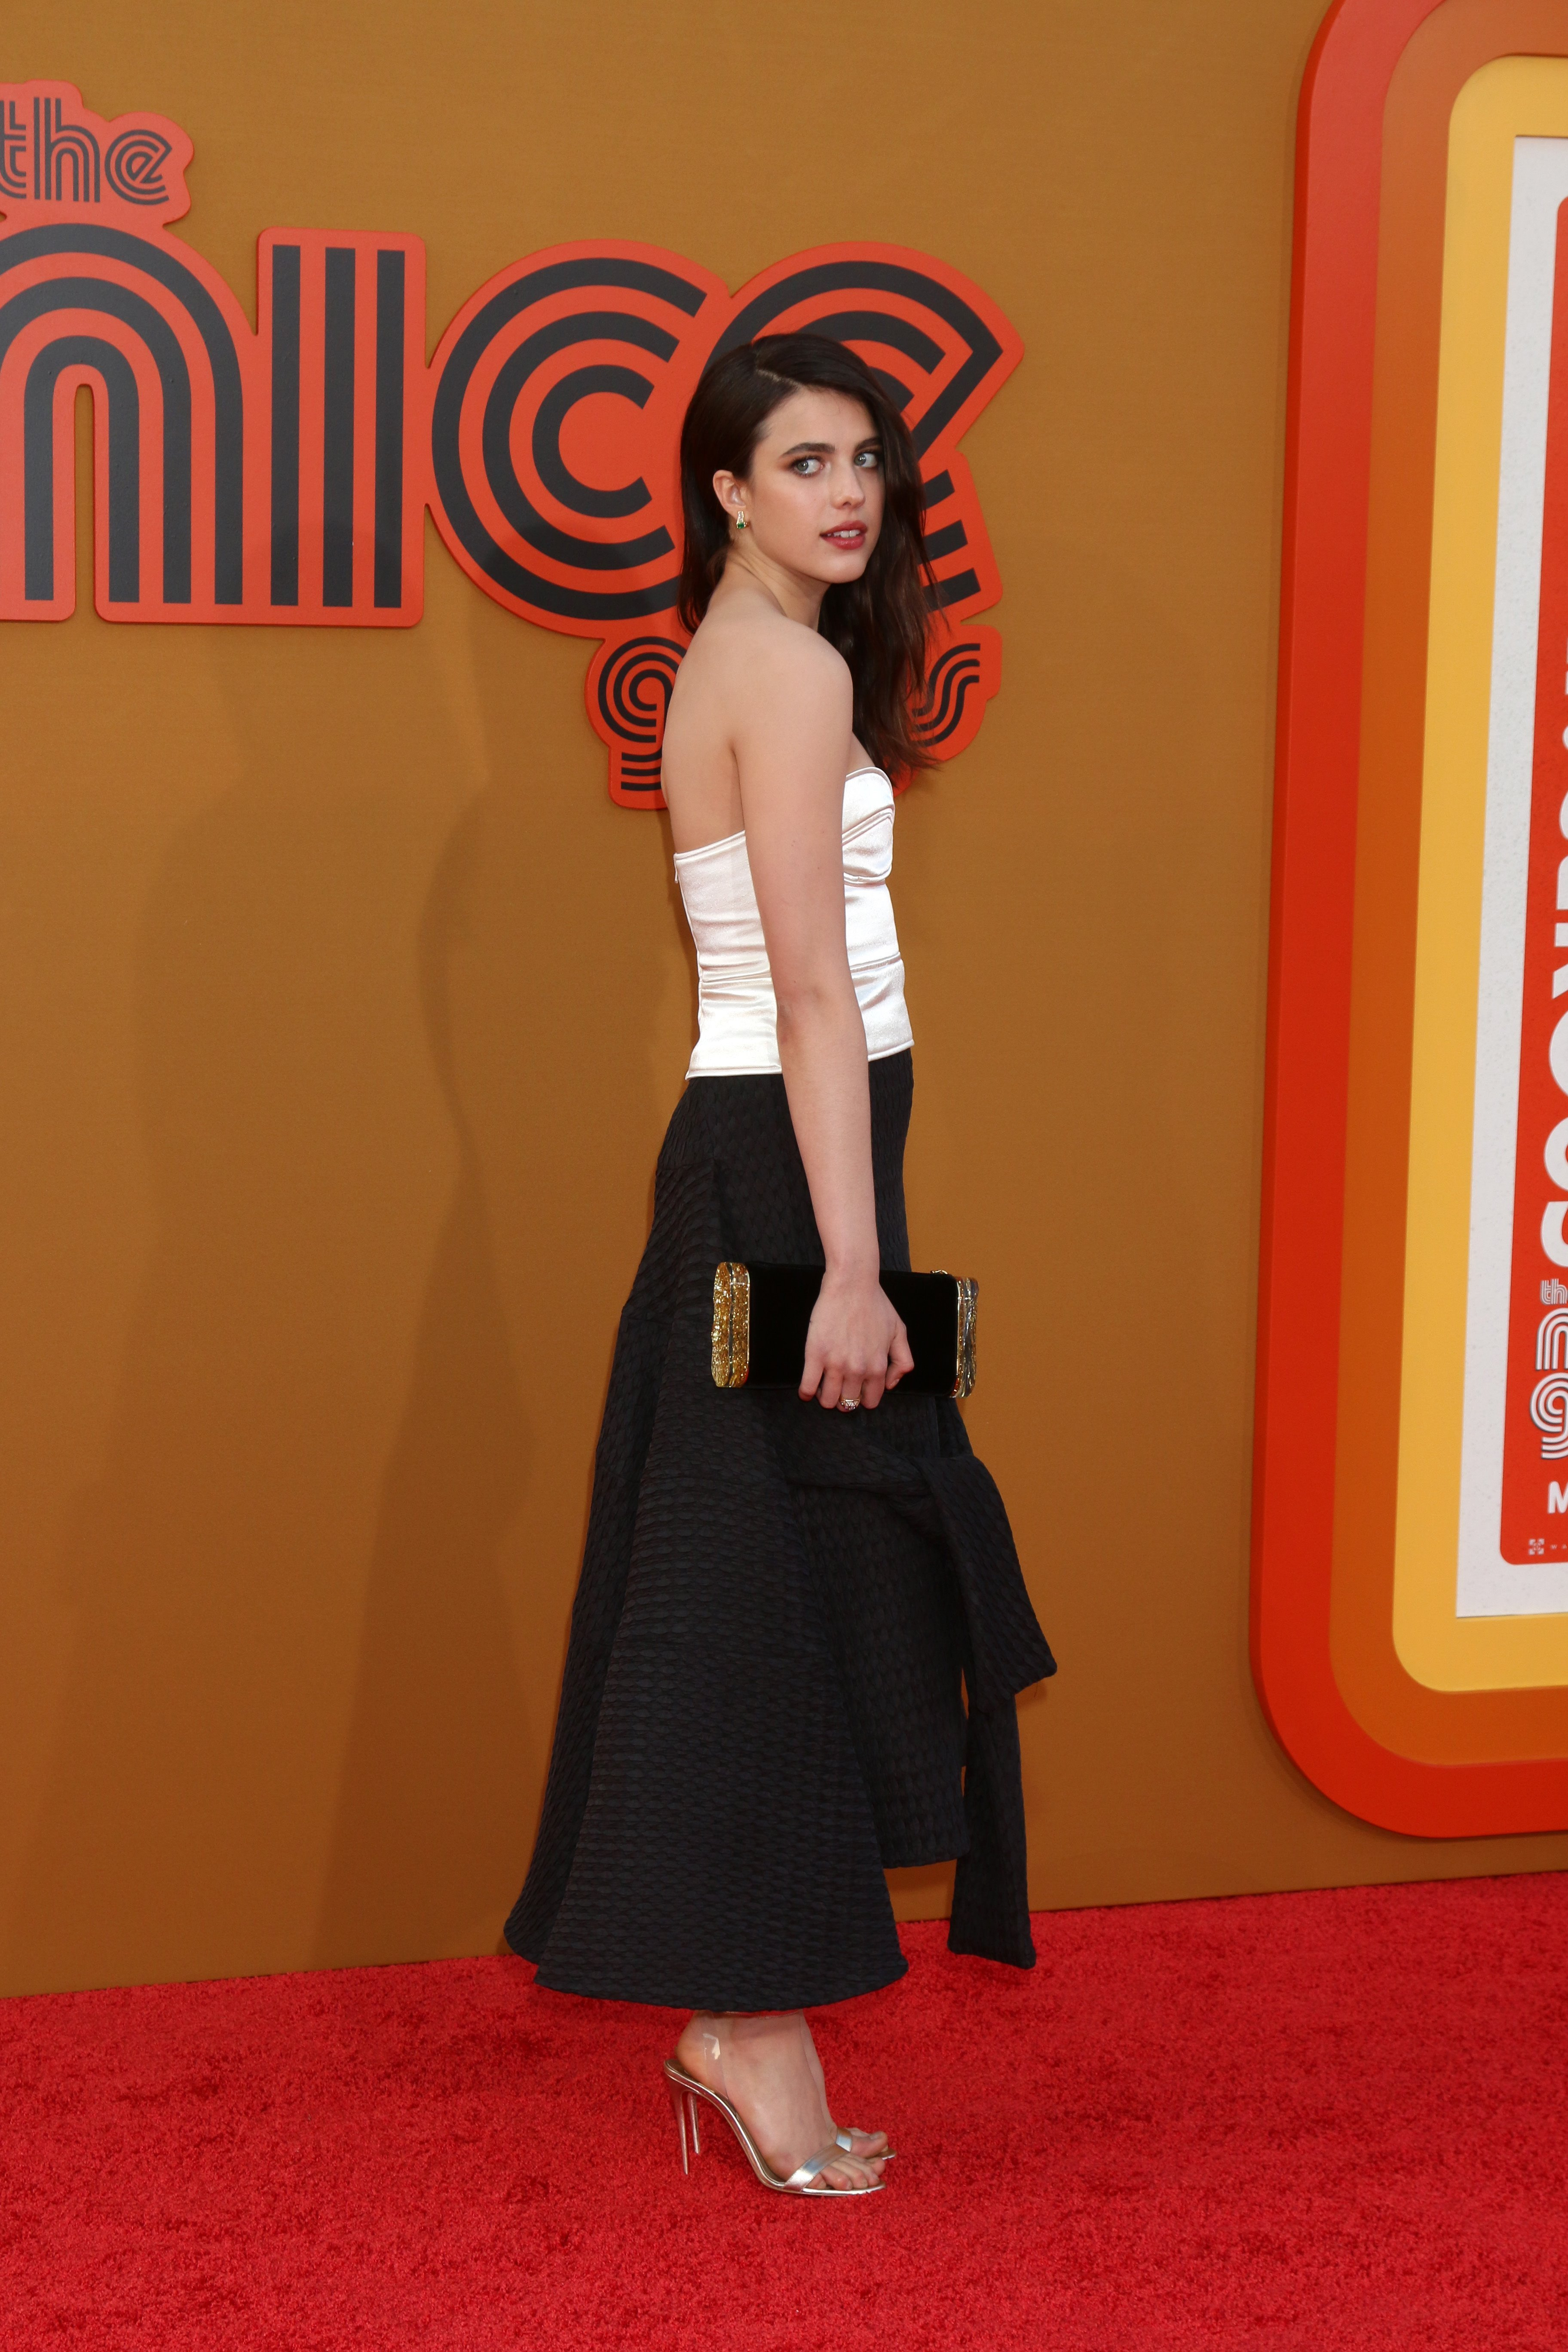 1000+ images about Margaret Qualley on Pinterest ...